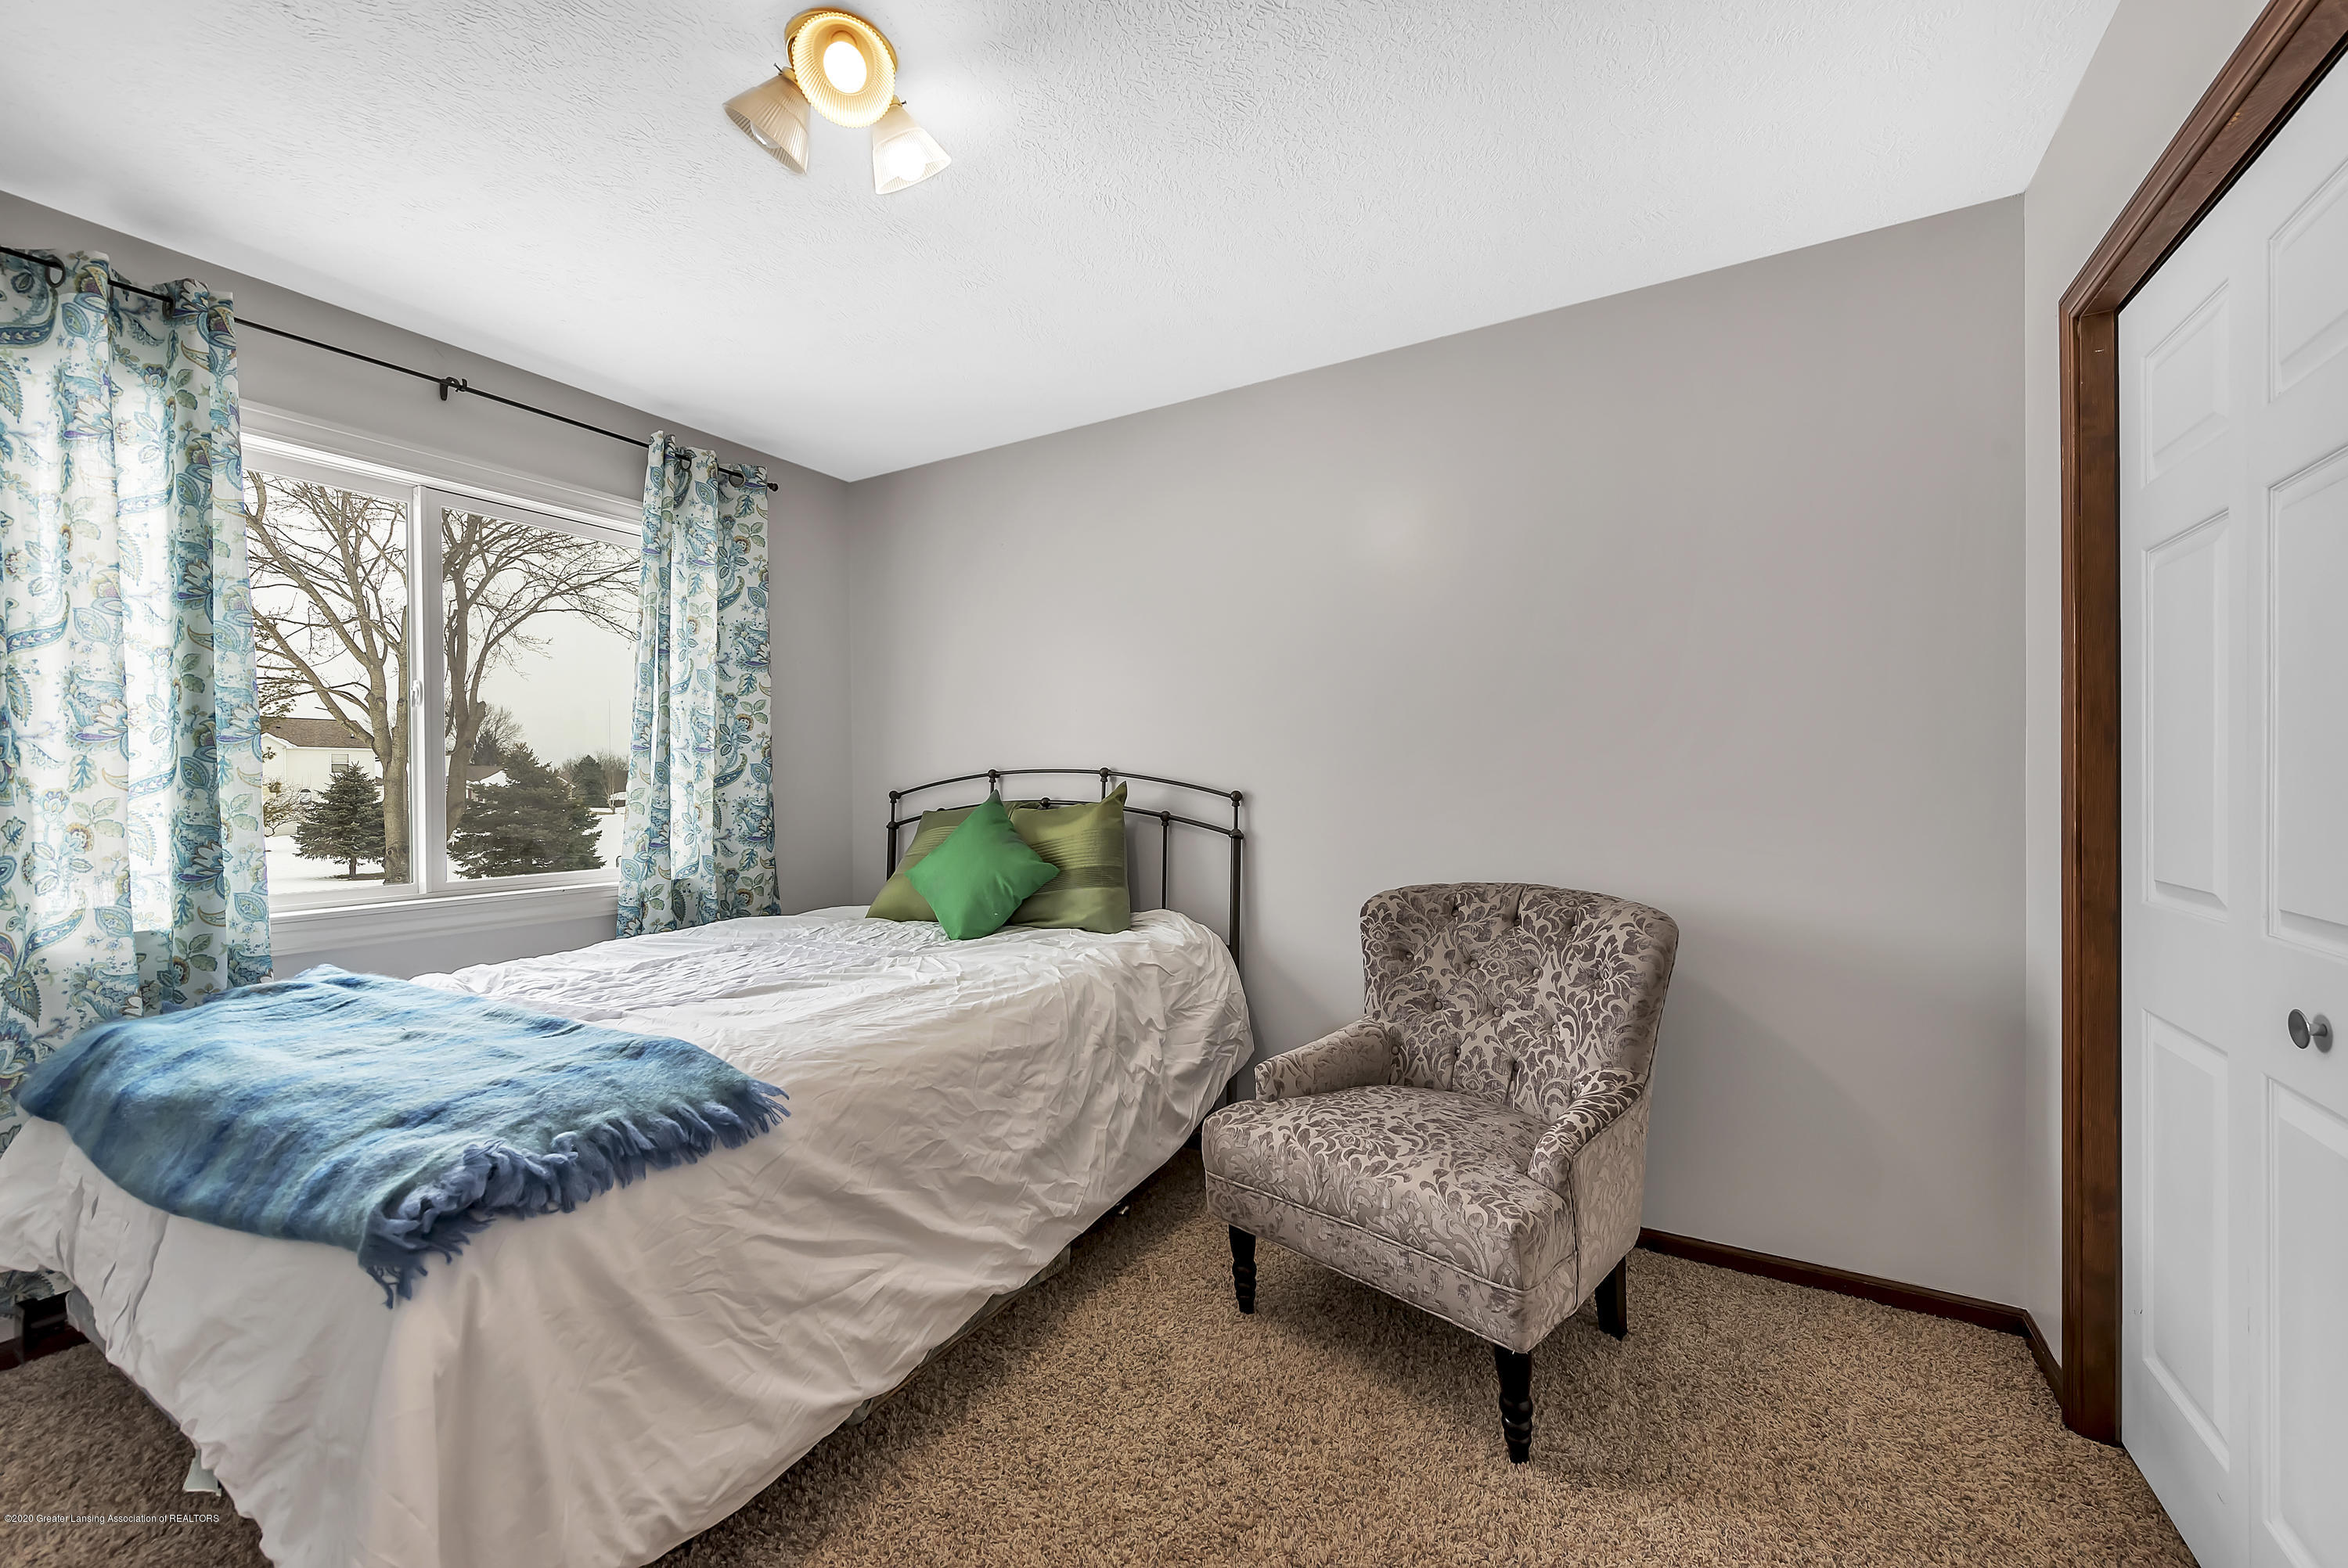 2450 Featherstone Dr - 2450-Featherstone-Dr-WindowStill-Real-Es - 17